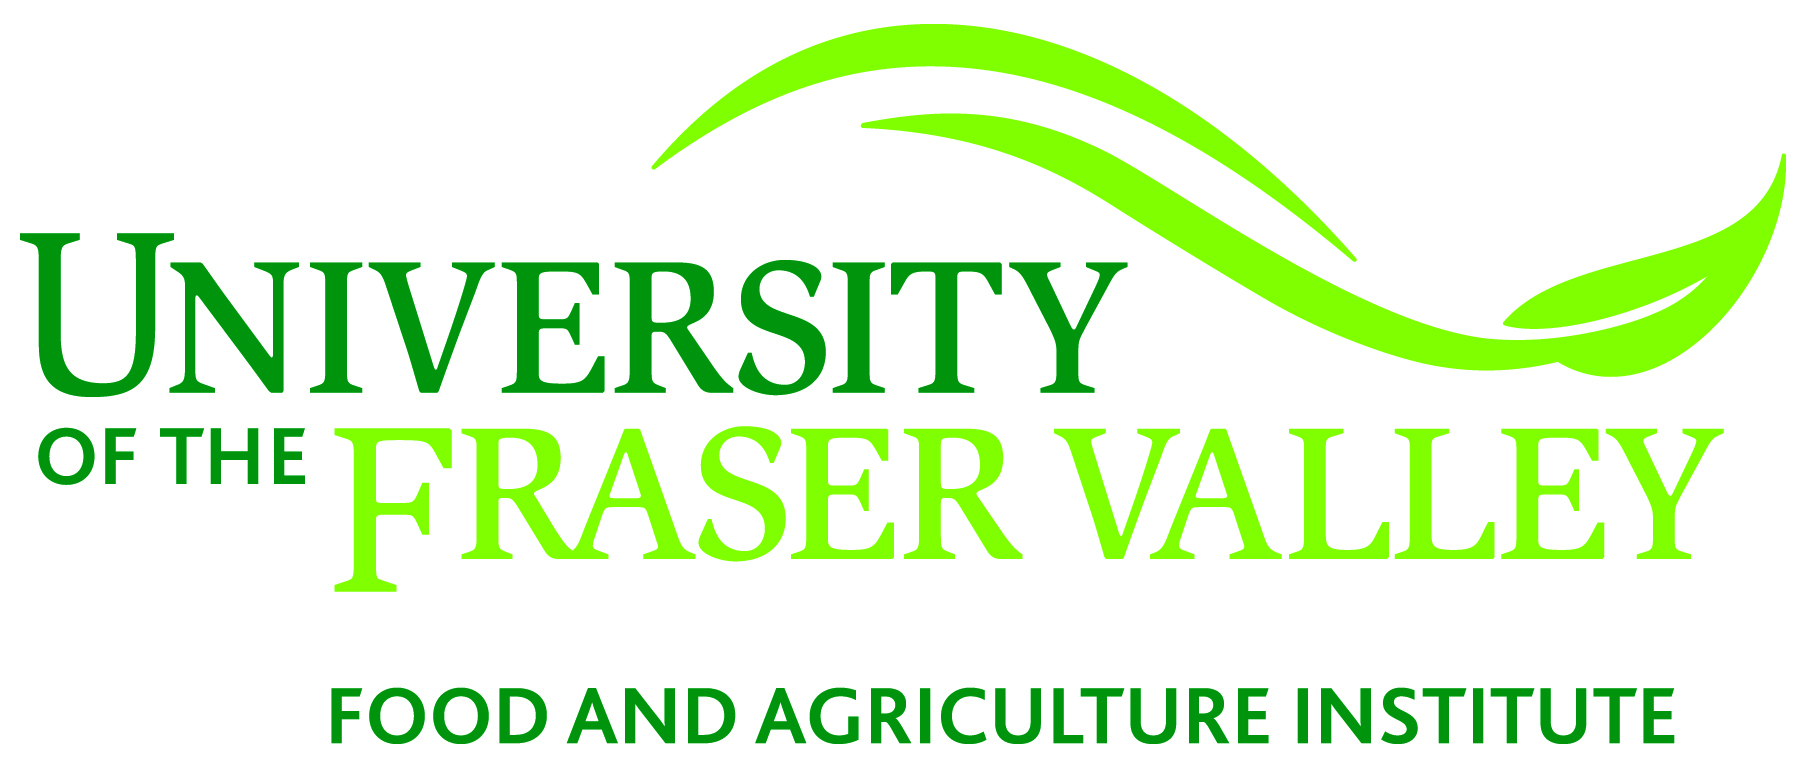 UFV Food and Agriculture Institute logo